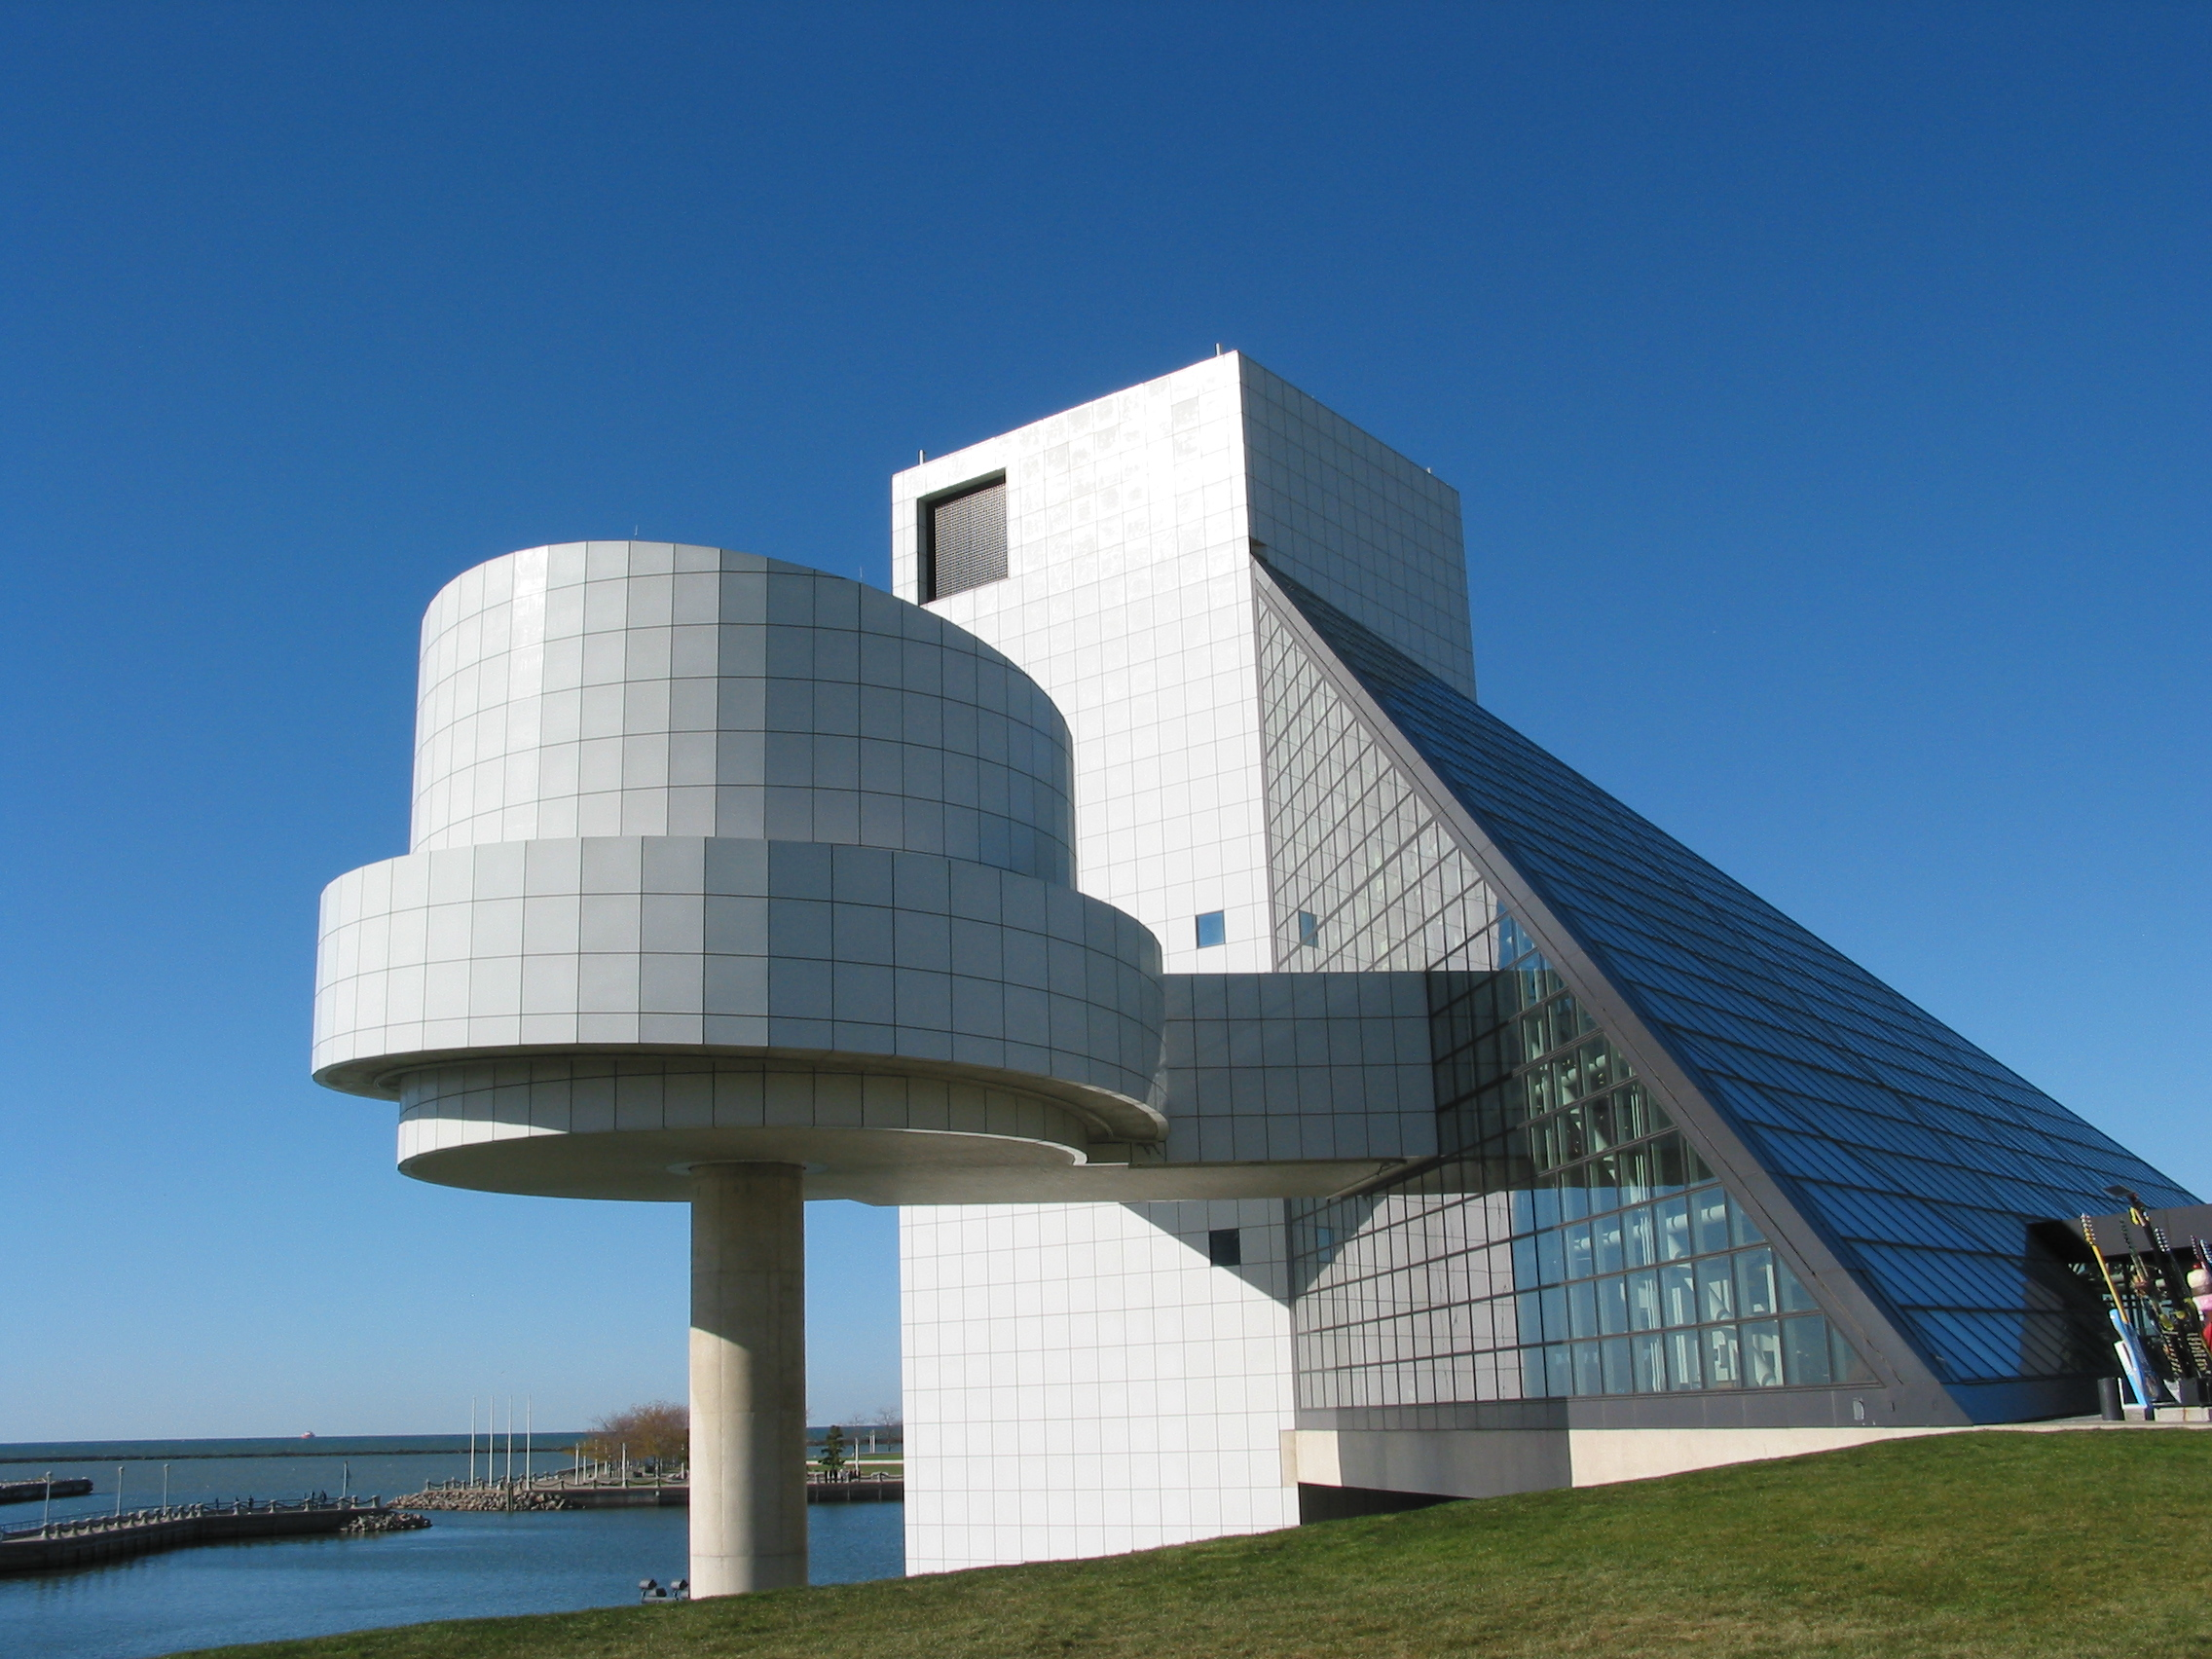 The Rock and Roll Hall of Fame in Cleveland, Ohio.